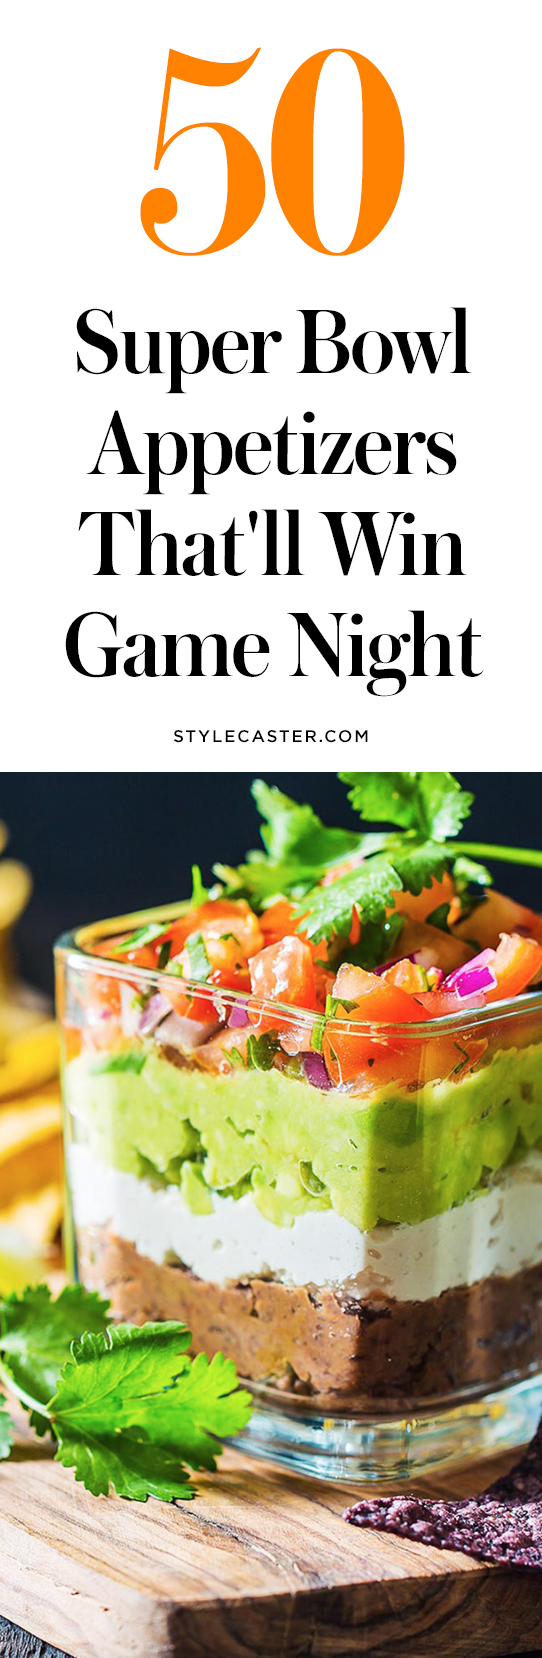 The best Super Bowl appetizers   @stylecaster